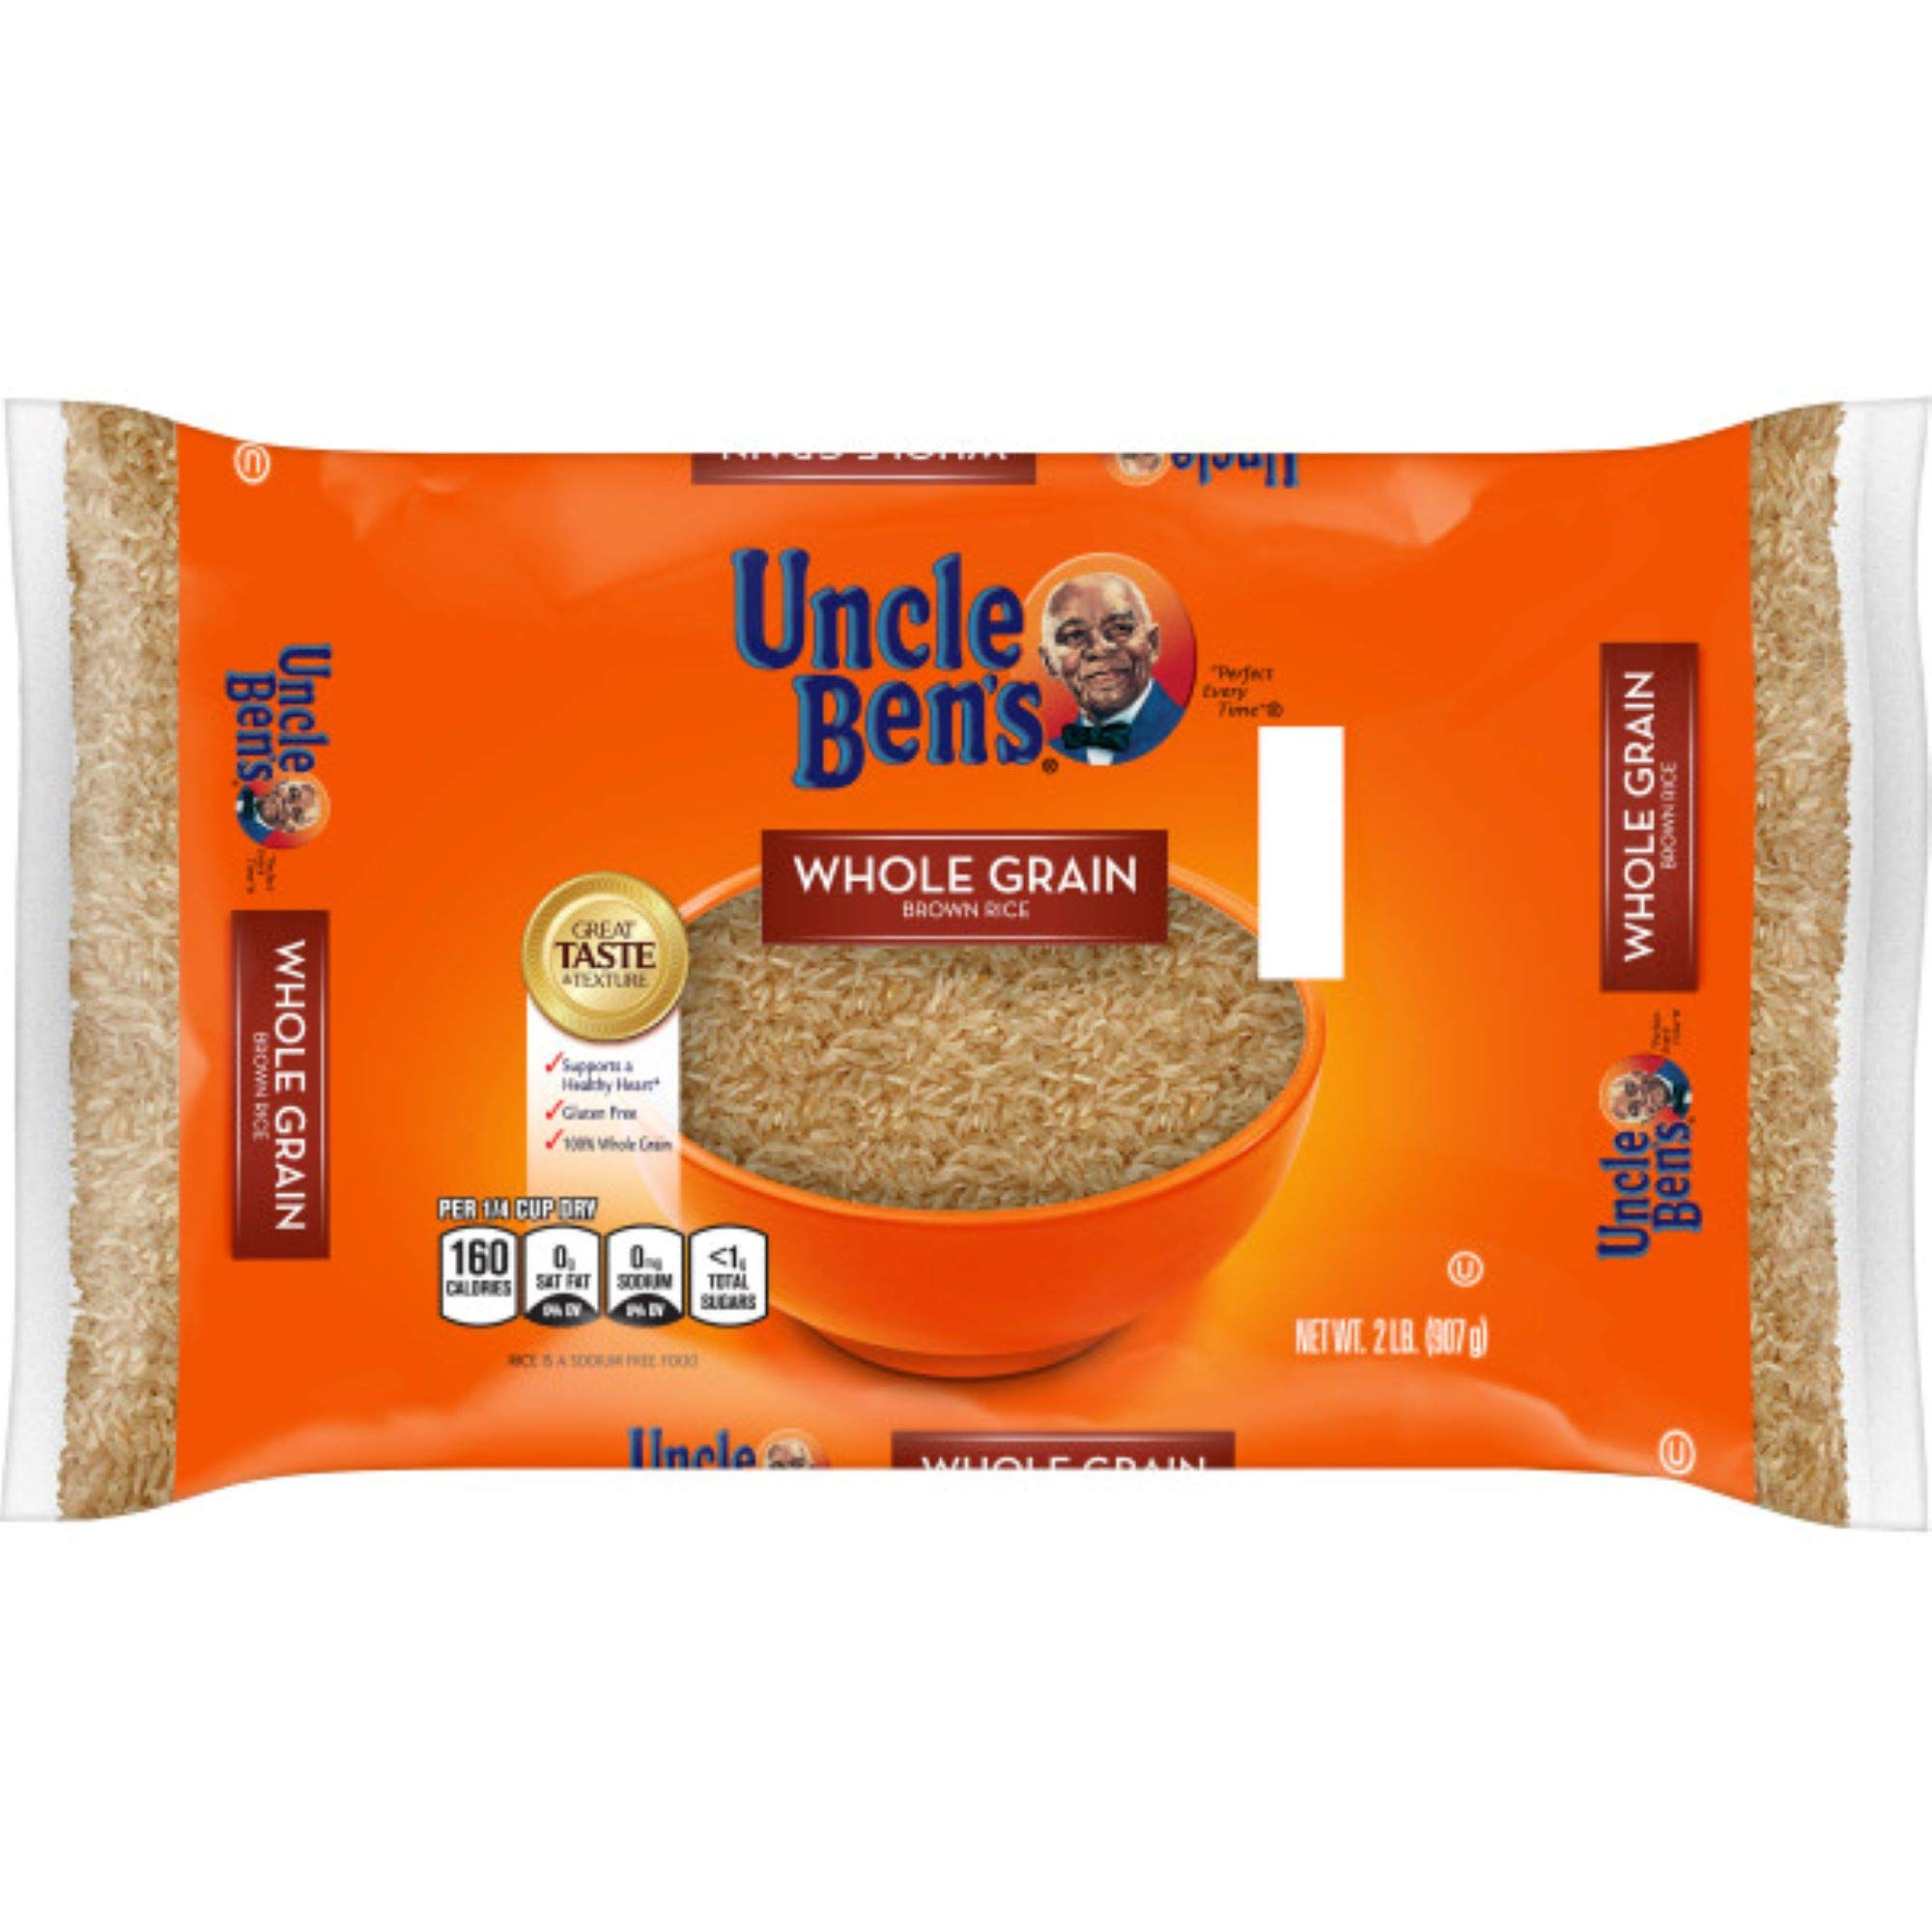 UNCLE BEN'S Whole Grain Brown Rice, 2lb.